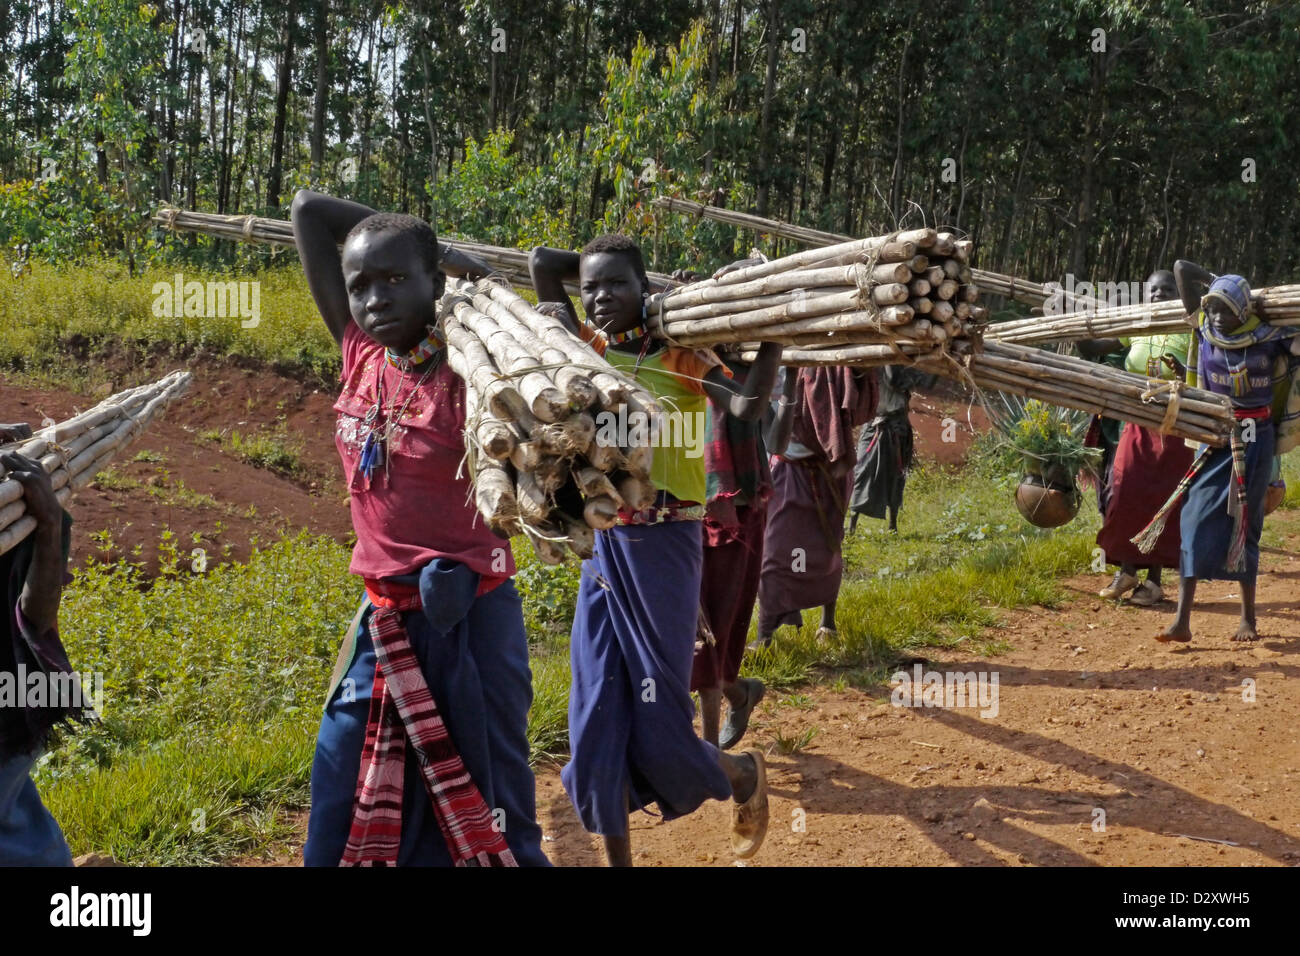 ethiopia road between chagni debate beni shangul gumuz region girls carrying poles for house construction Stock Photo